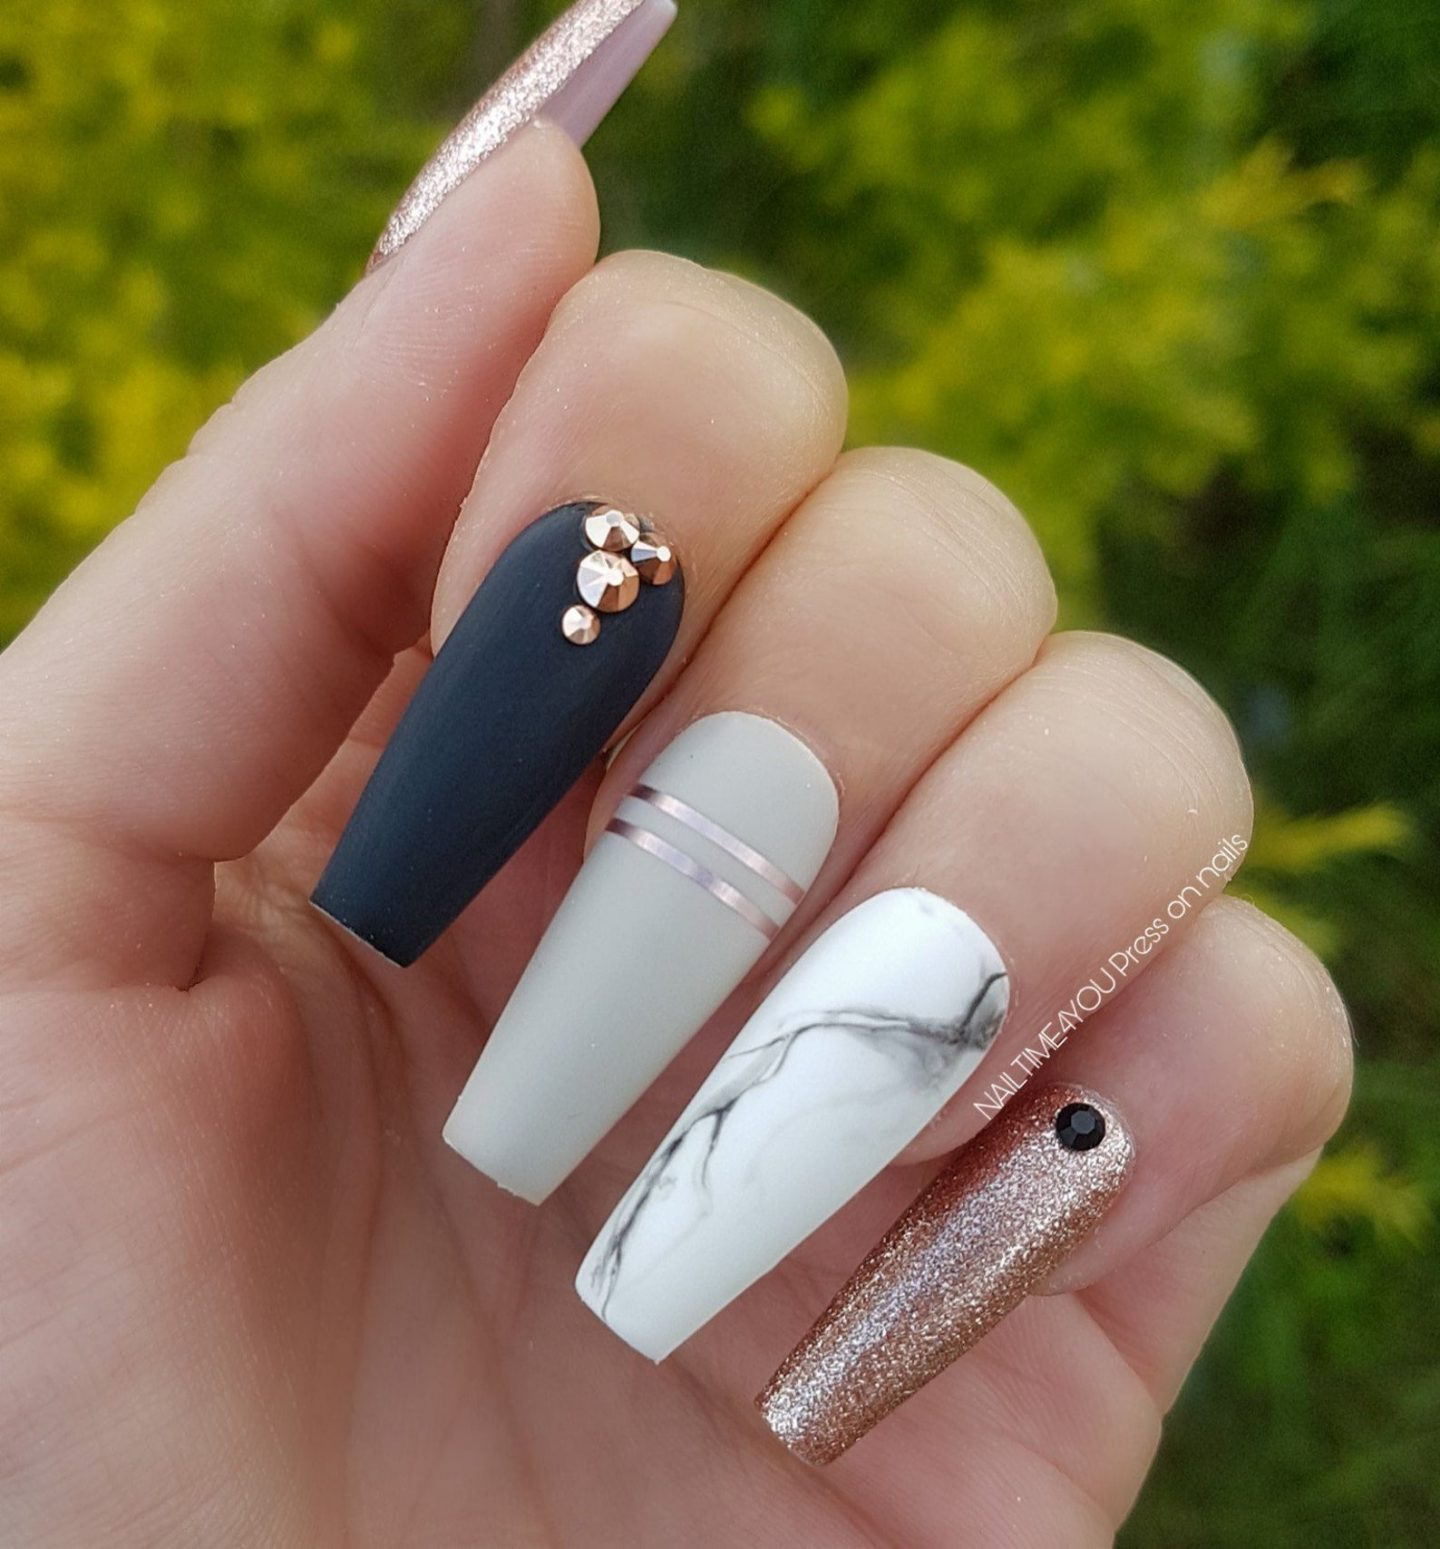 Matte black and grey marble nails with rose gold glitter